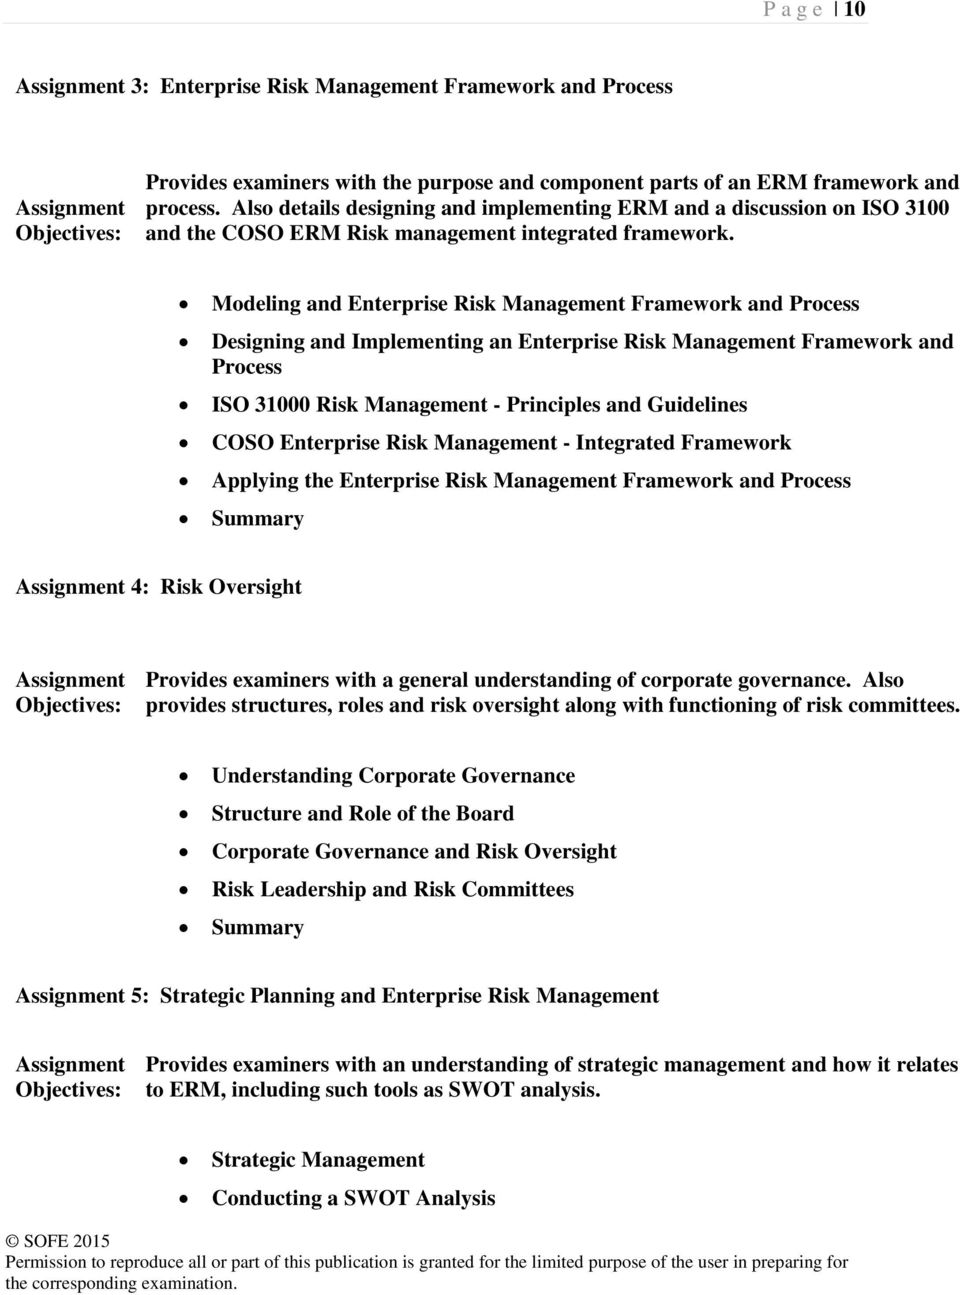 Modeling and Enterprise Risk Management Framework and Process Designing and Implementing an Enterprise Risk Management Framework and Process ISO 31000 Risk Management - Principles and Guidelines COSO